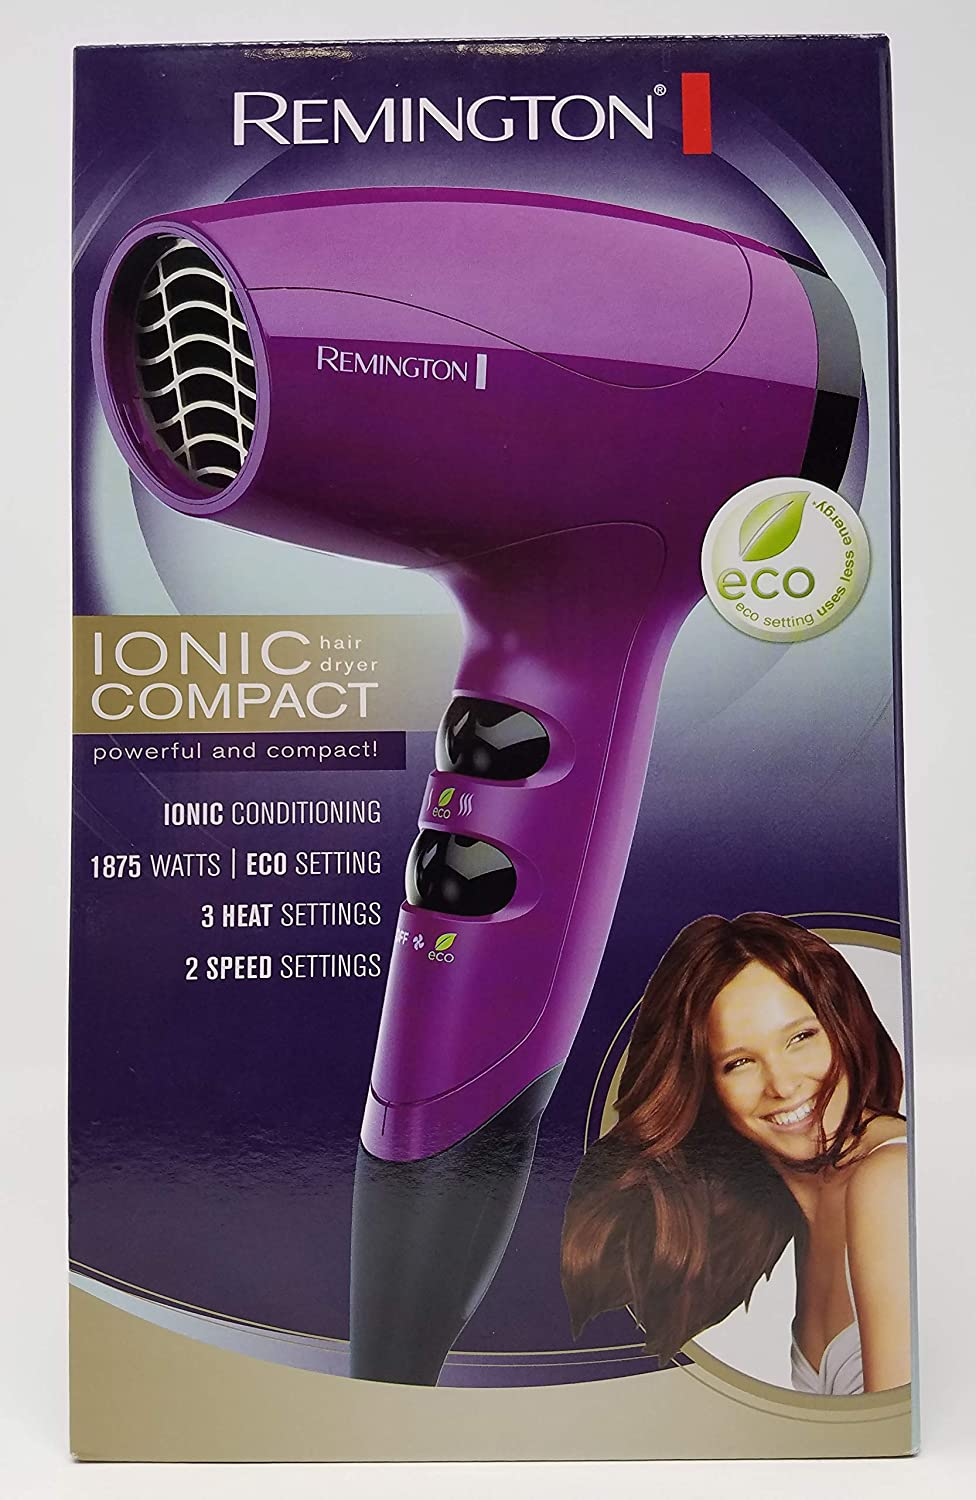 Compact Ionic Travel Hair Dryer, D5000